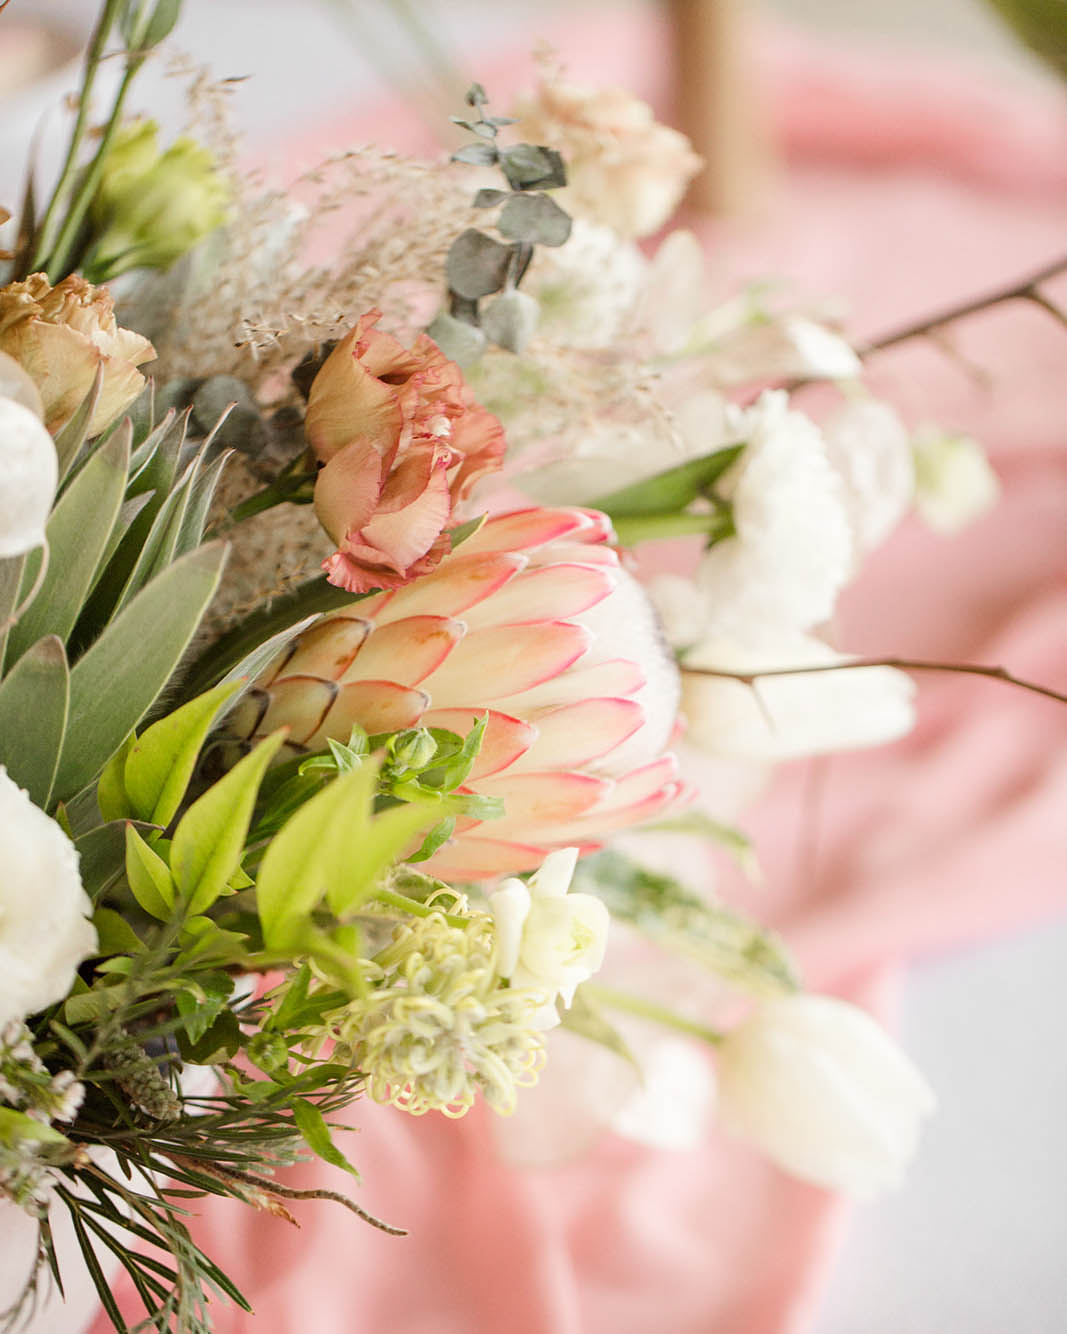 Romantic and lively wedding florals by Revel Petals. Photography: Kelby Maria Photography. Planning: Peachy Keen Coordination